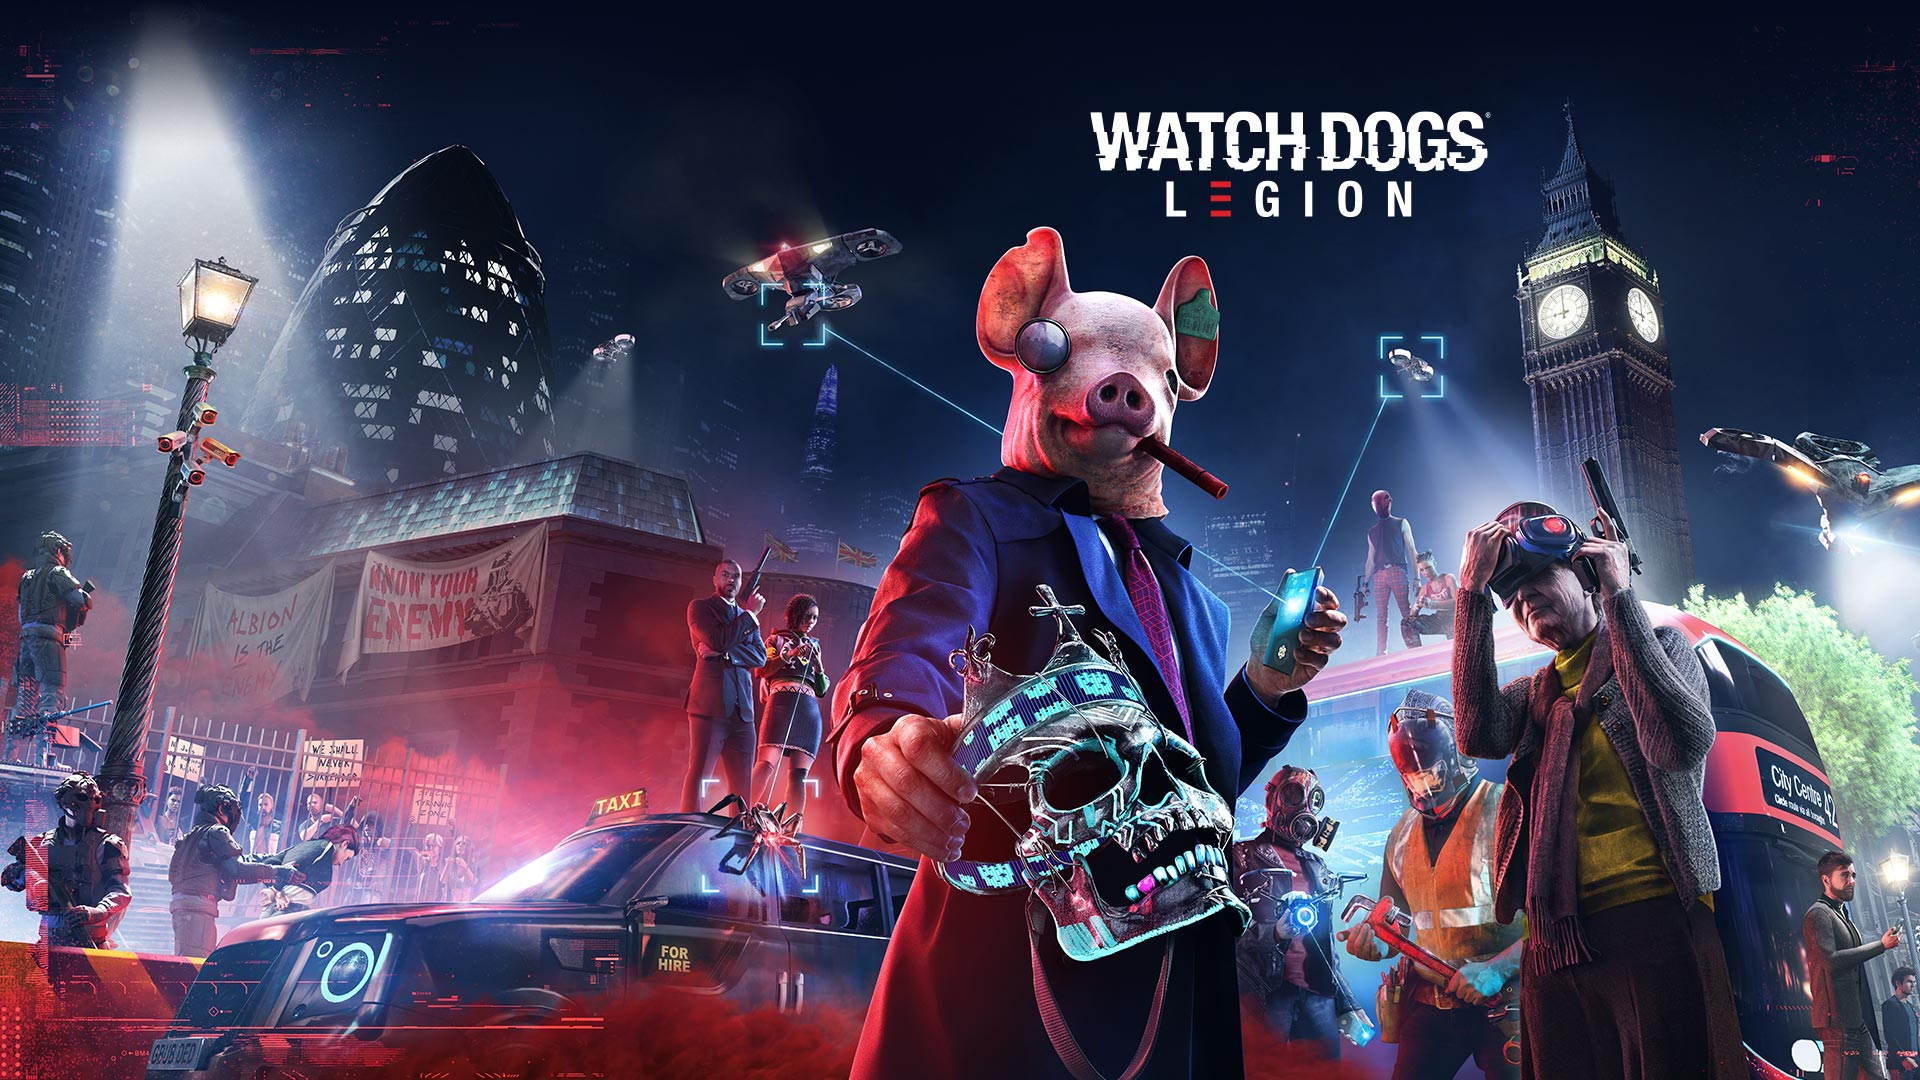 Watch Dogs Legion logo, person in a pig mask holding a skull, two drones, Big Ben and several other characters with weapons